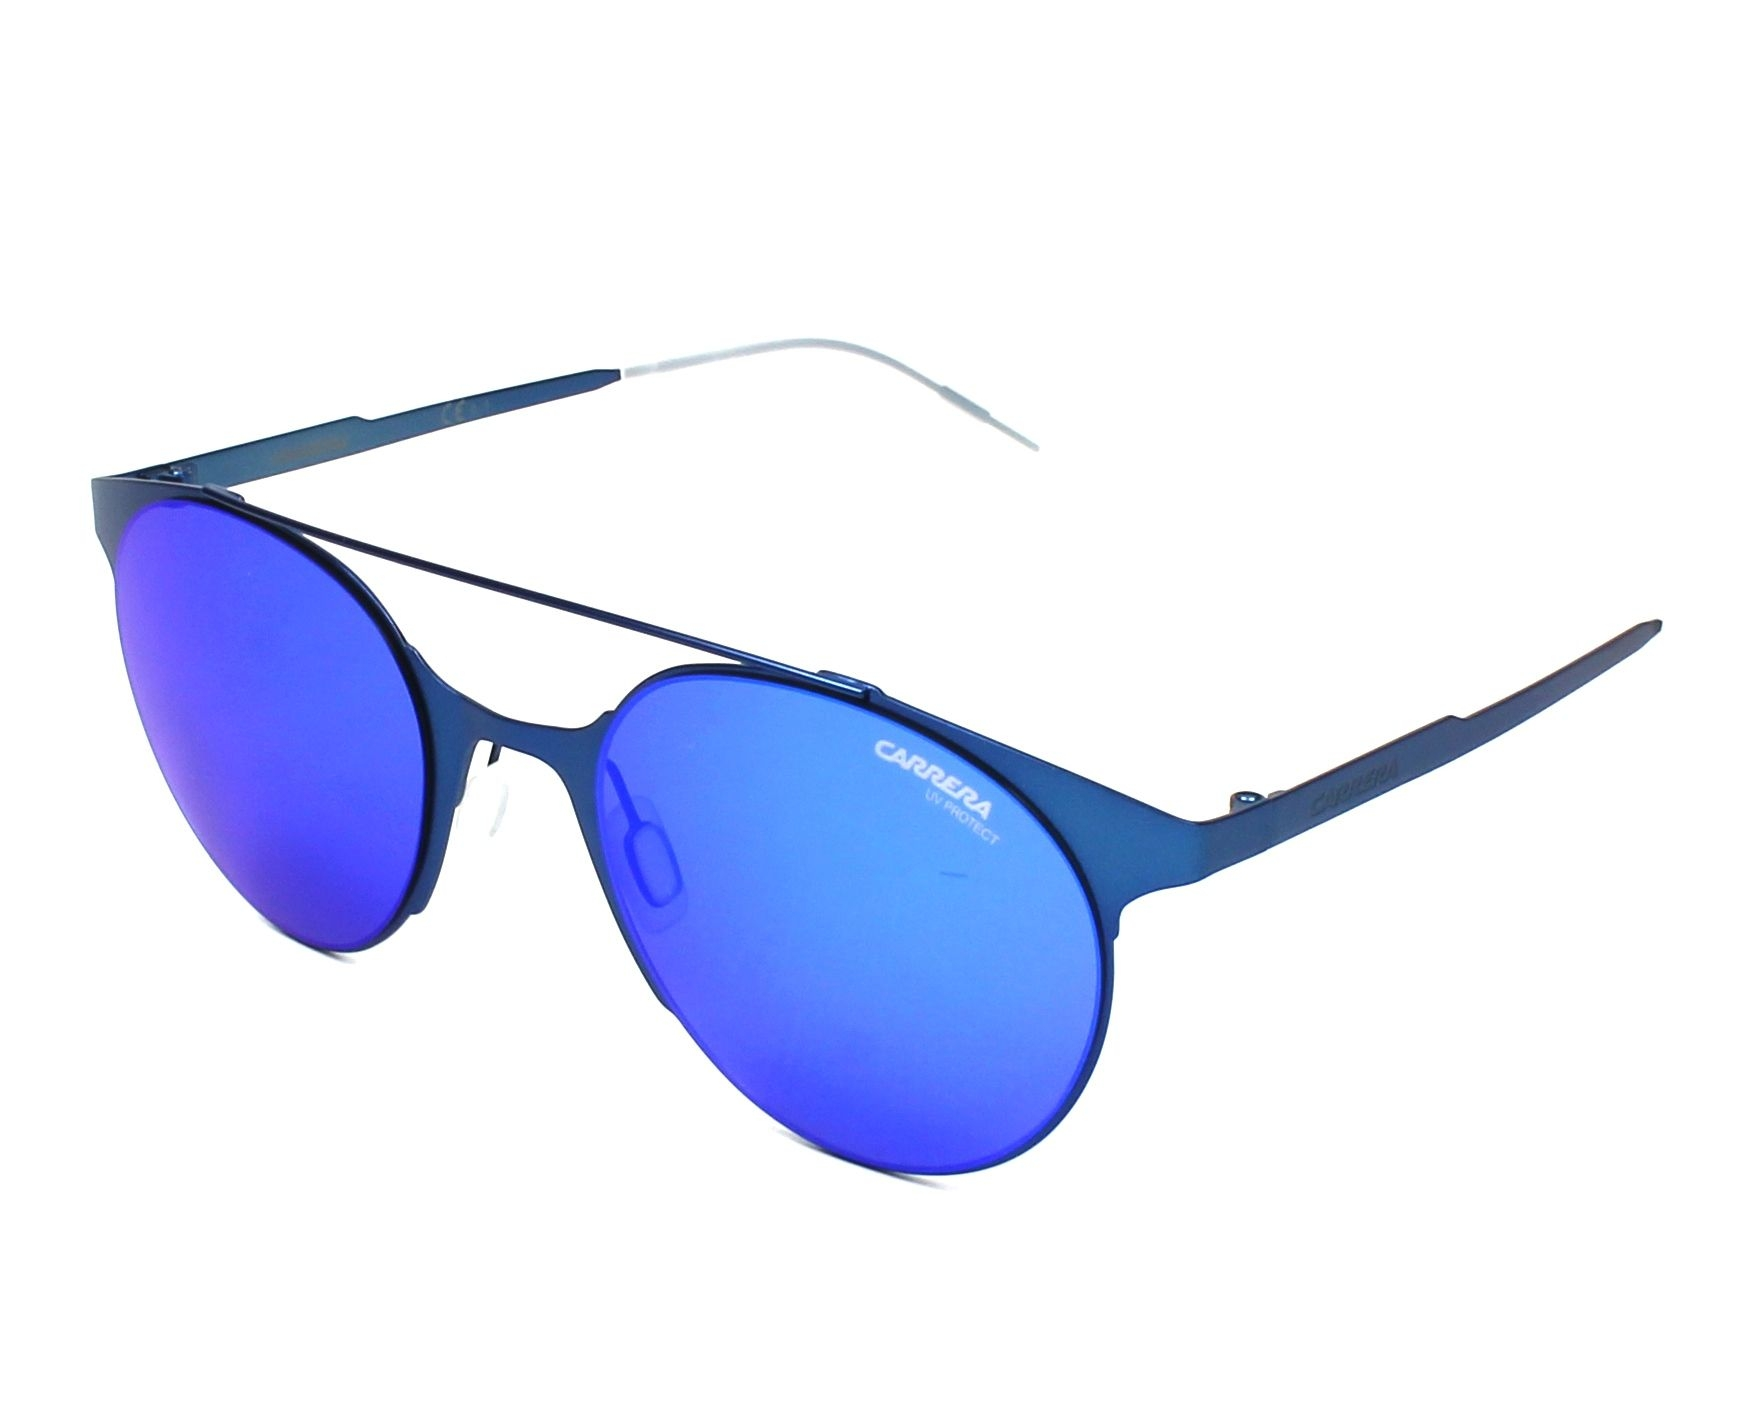 2ebb3a5b38 Sunglasses Carrera Carrera-115-S 1O9 Z0 50-21 Blue profile view